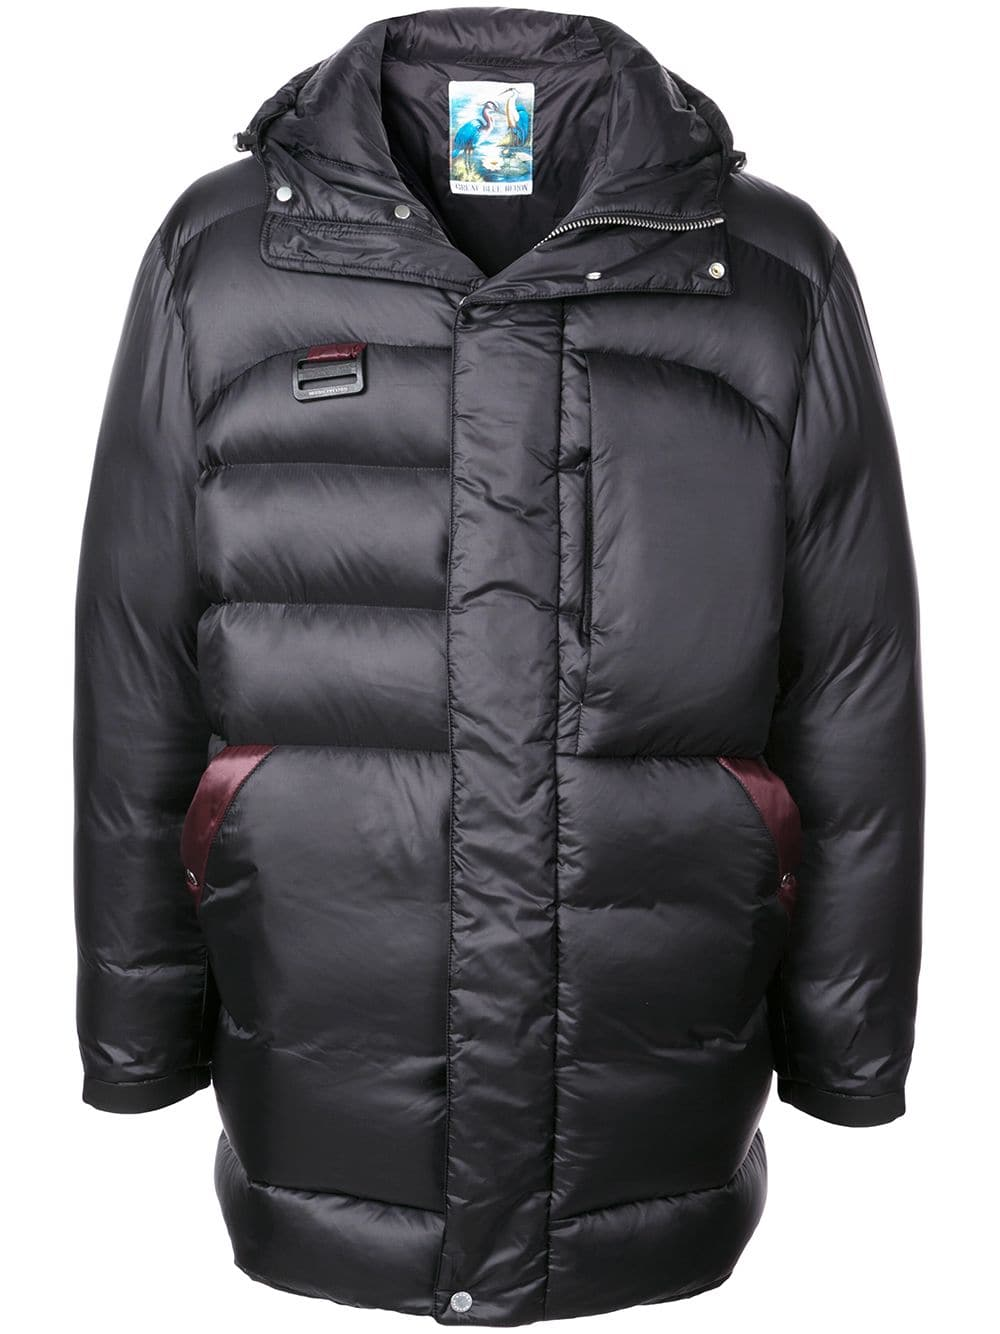 ea2cef300 https://milanstyle.com/products/fay-puffer-jacket-green-13412323 ...